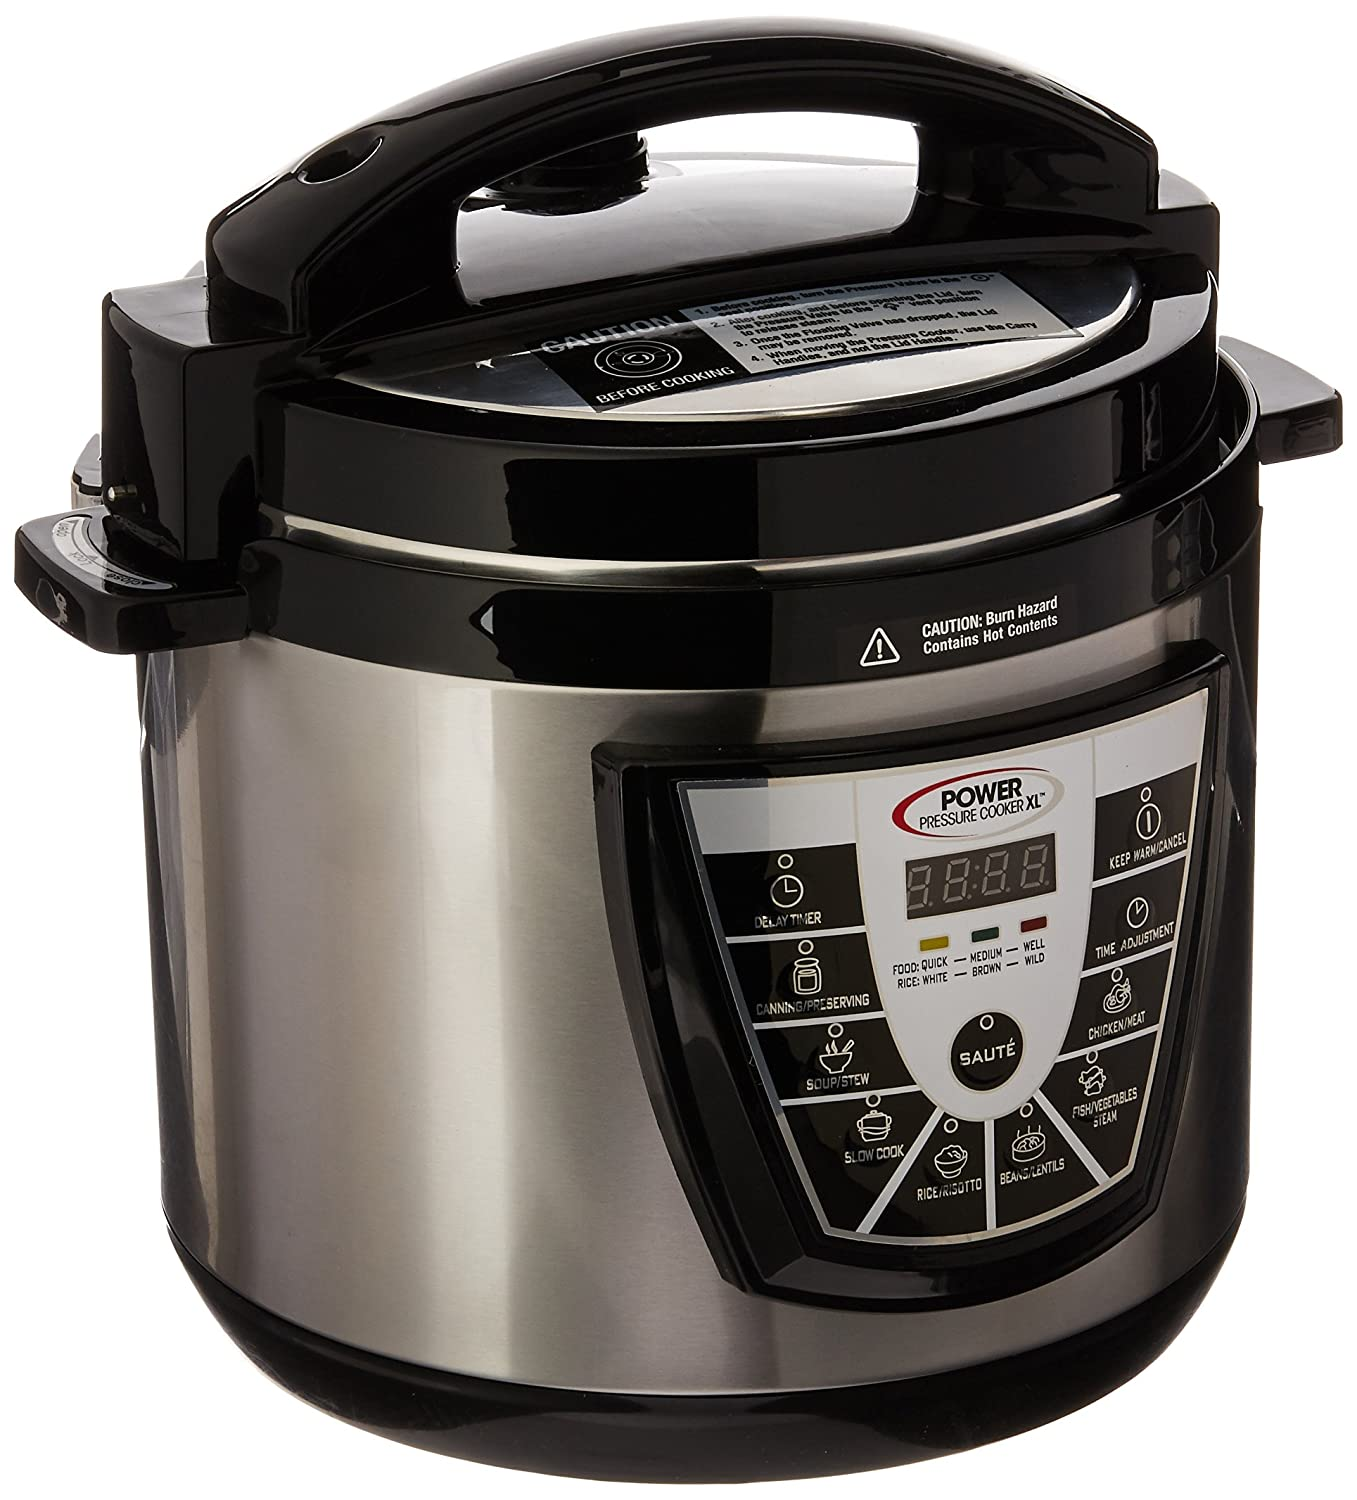 Pressure Cooker Cooking: Best Pressure Cooker Consumer Reports 2020